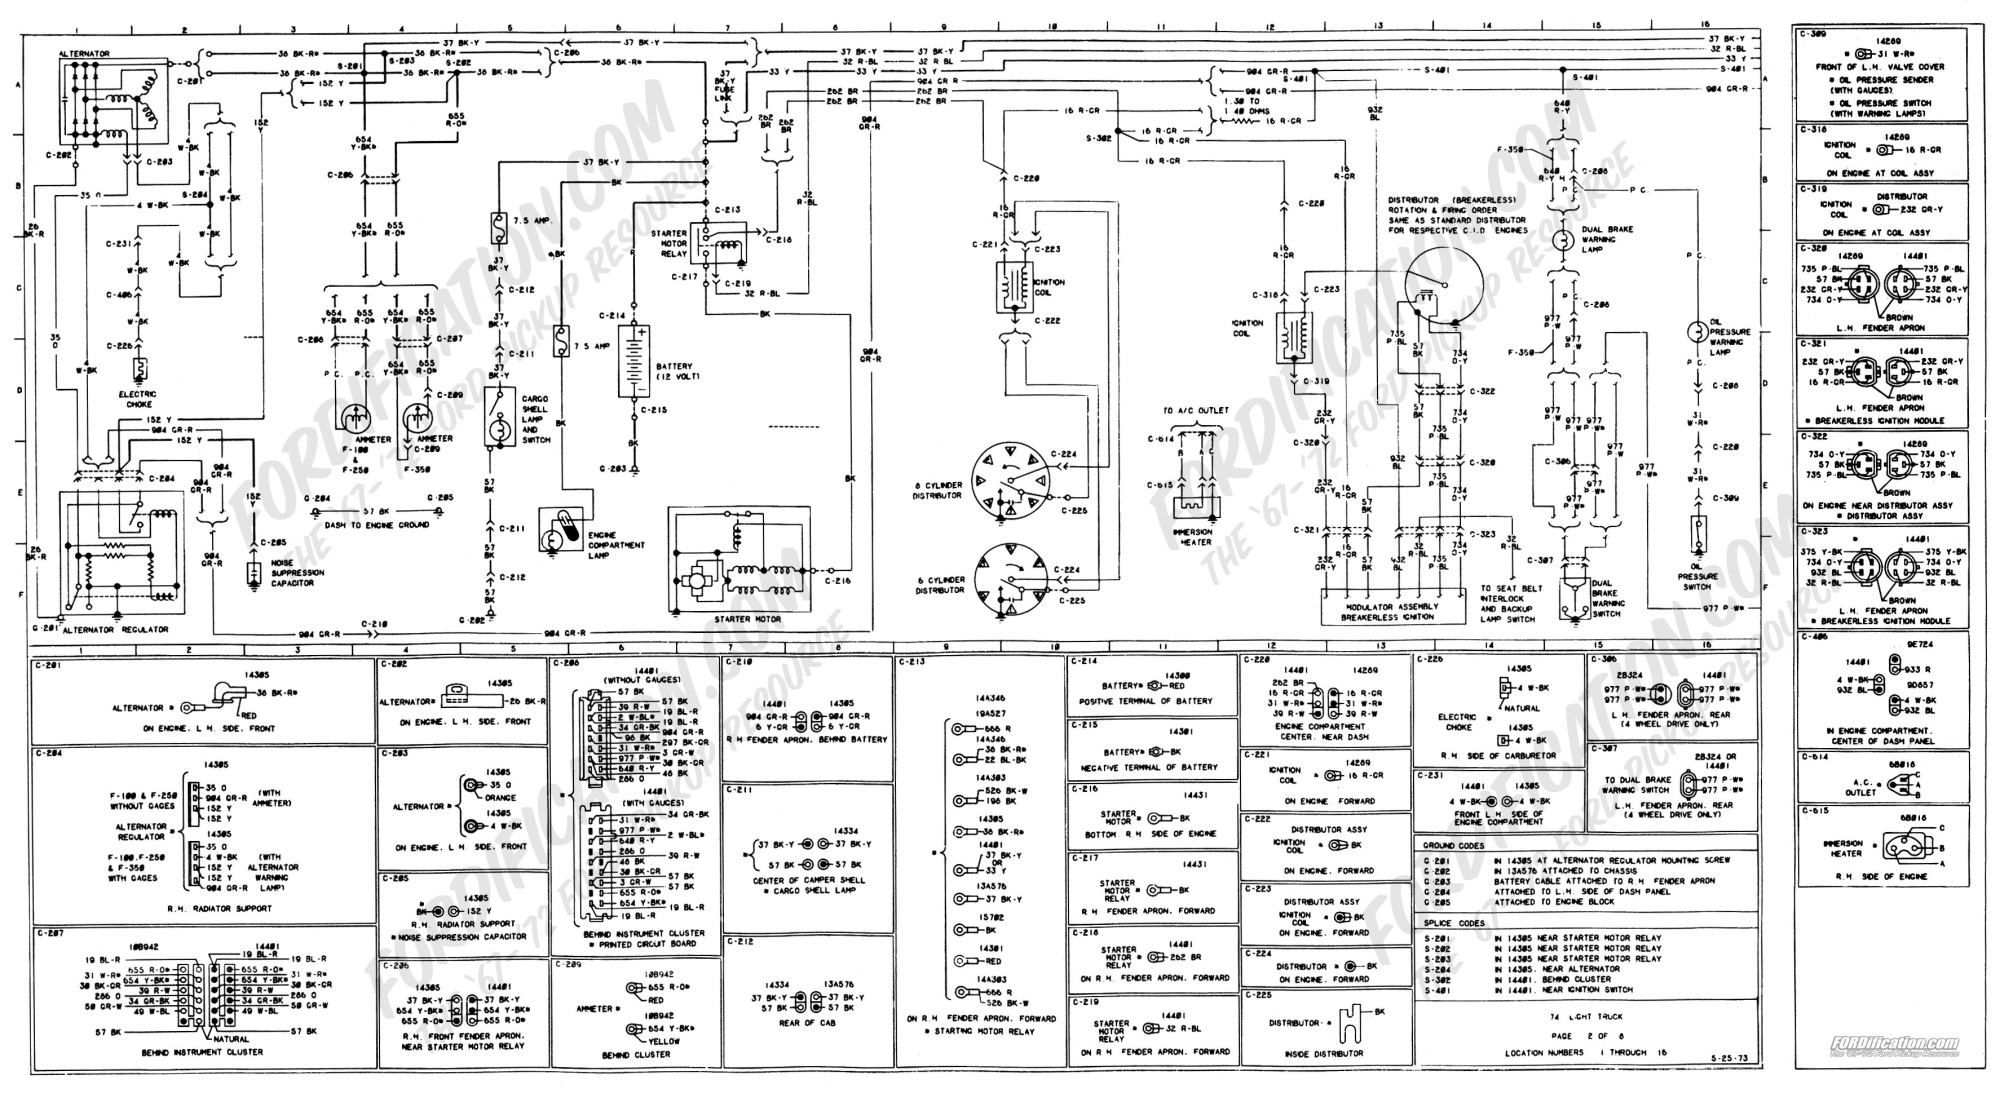 hight resolution of 1973 1979 ford truck wiring diagrams schematics fordification net 1974 ford f100 alternator wiring diagram 1974 ford f100 wiring diagram